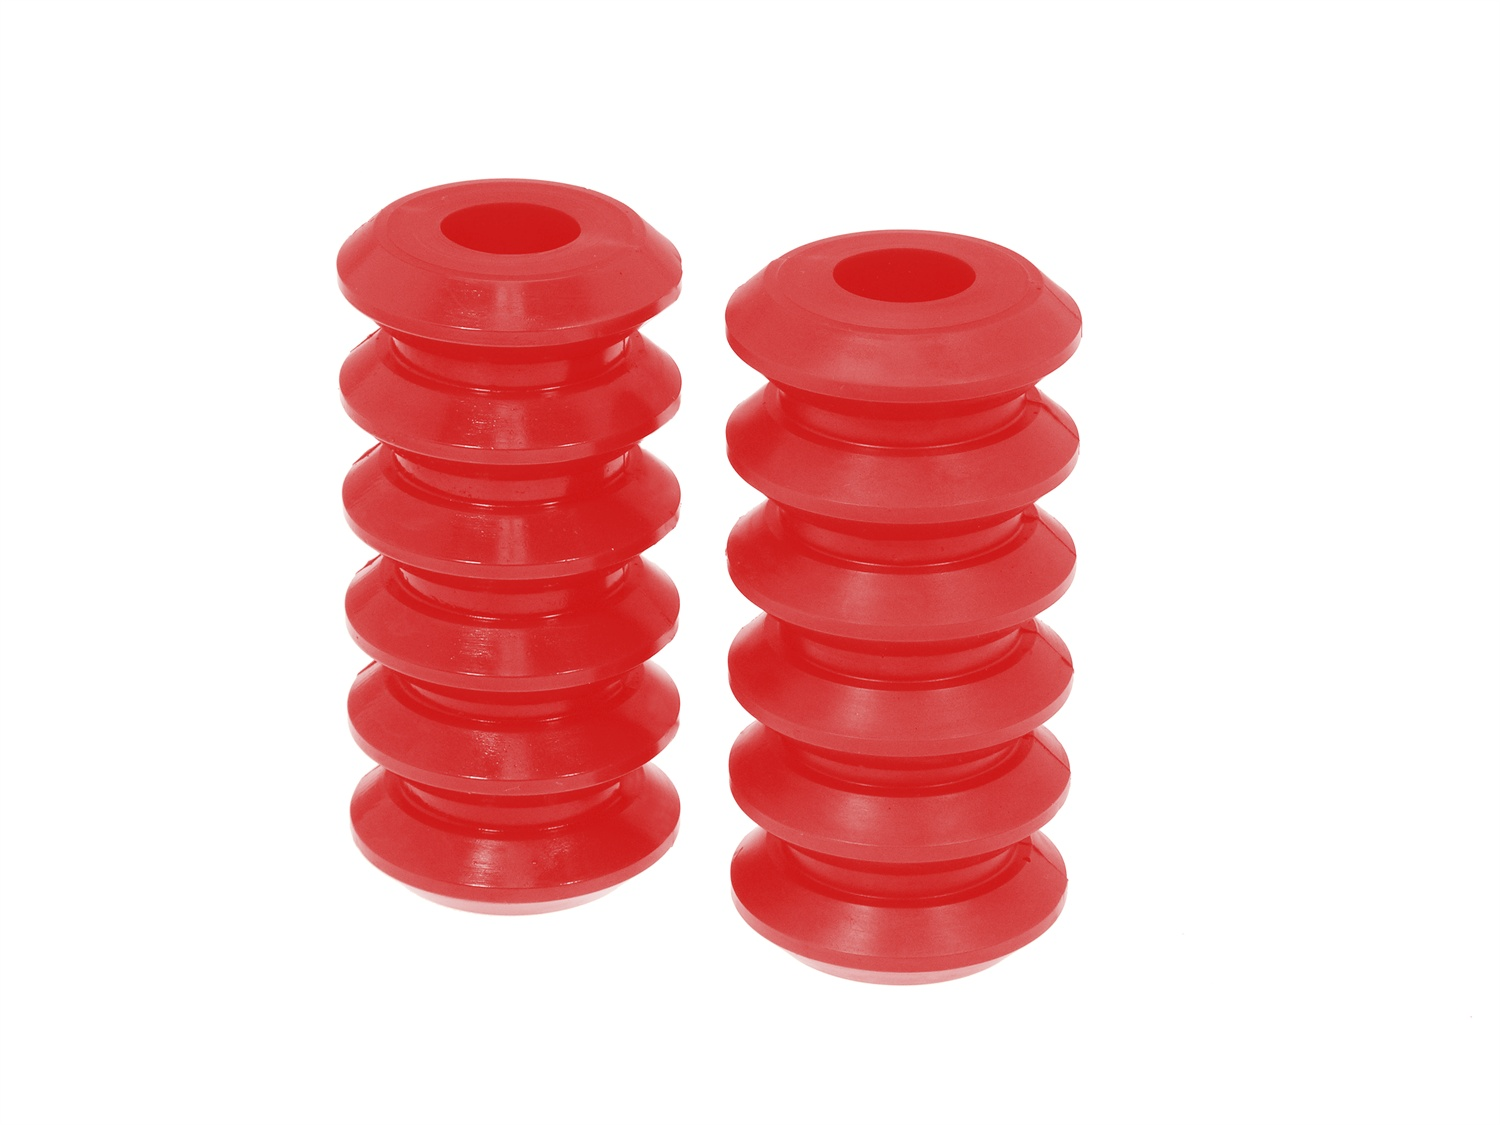 All Vehicles (Universal) Prothane Coil Spring Inserts - 10-1/2 Inch - Red